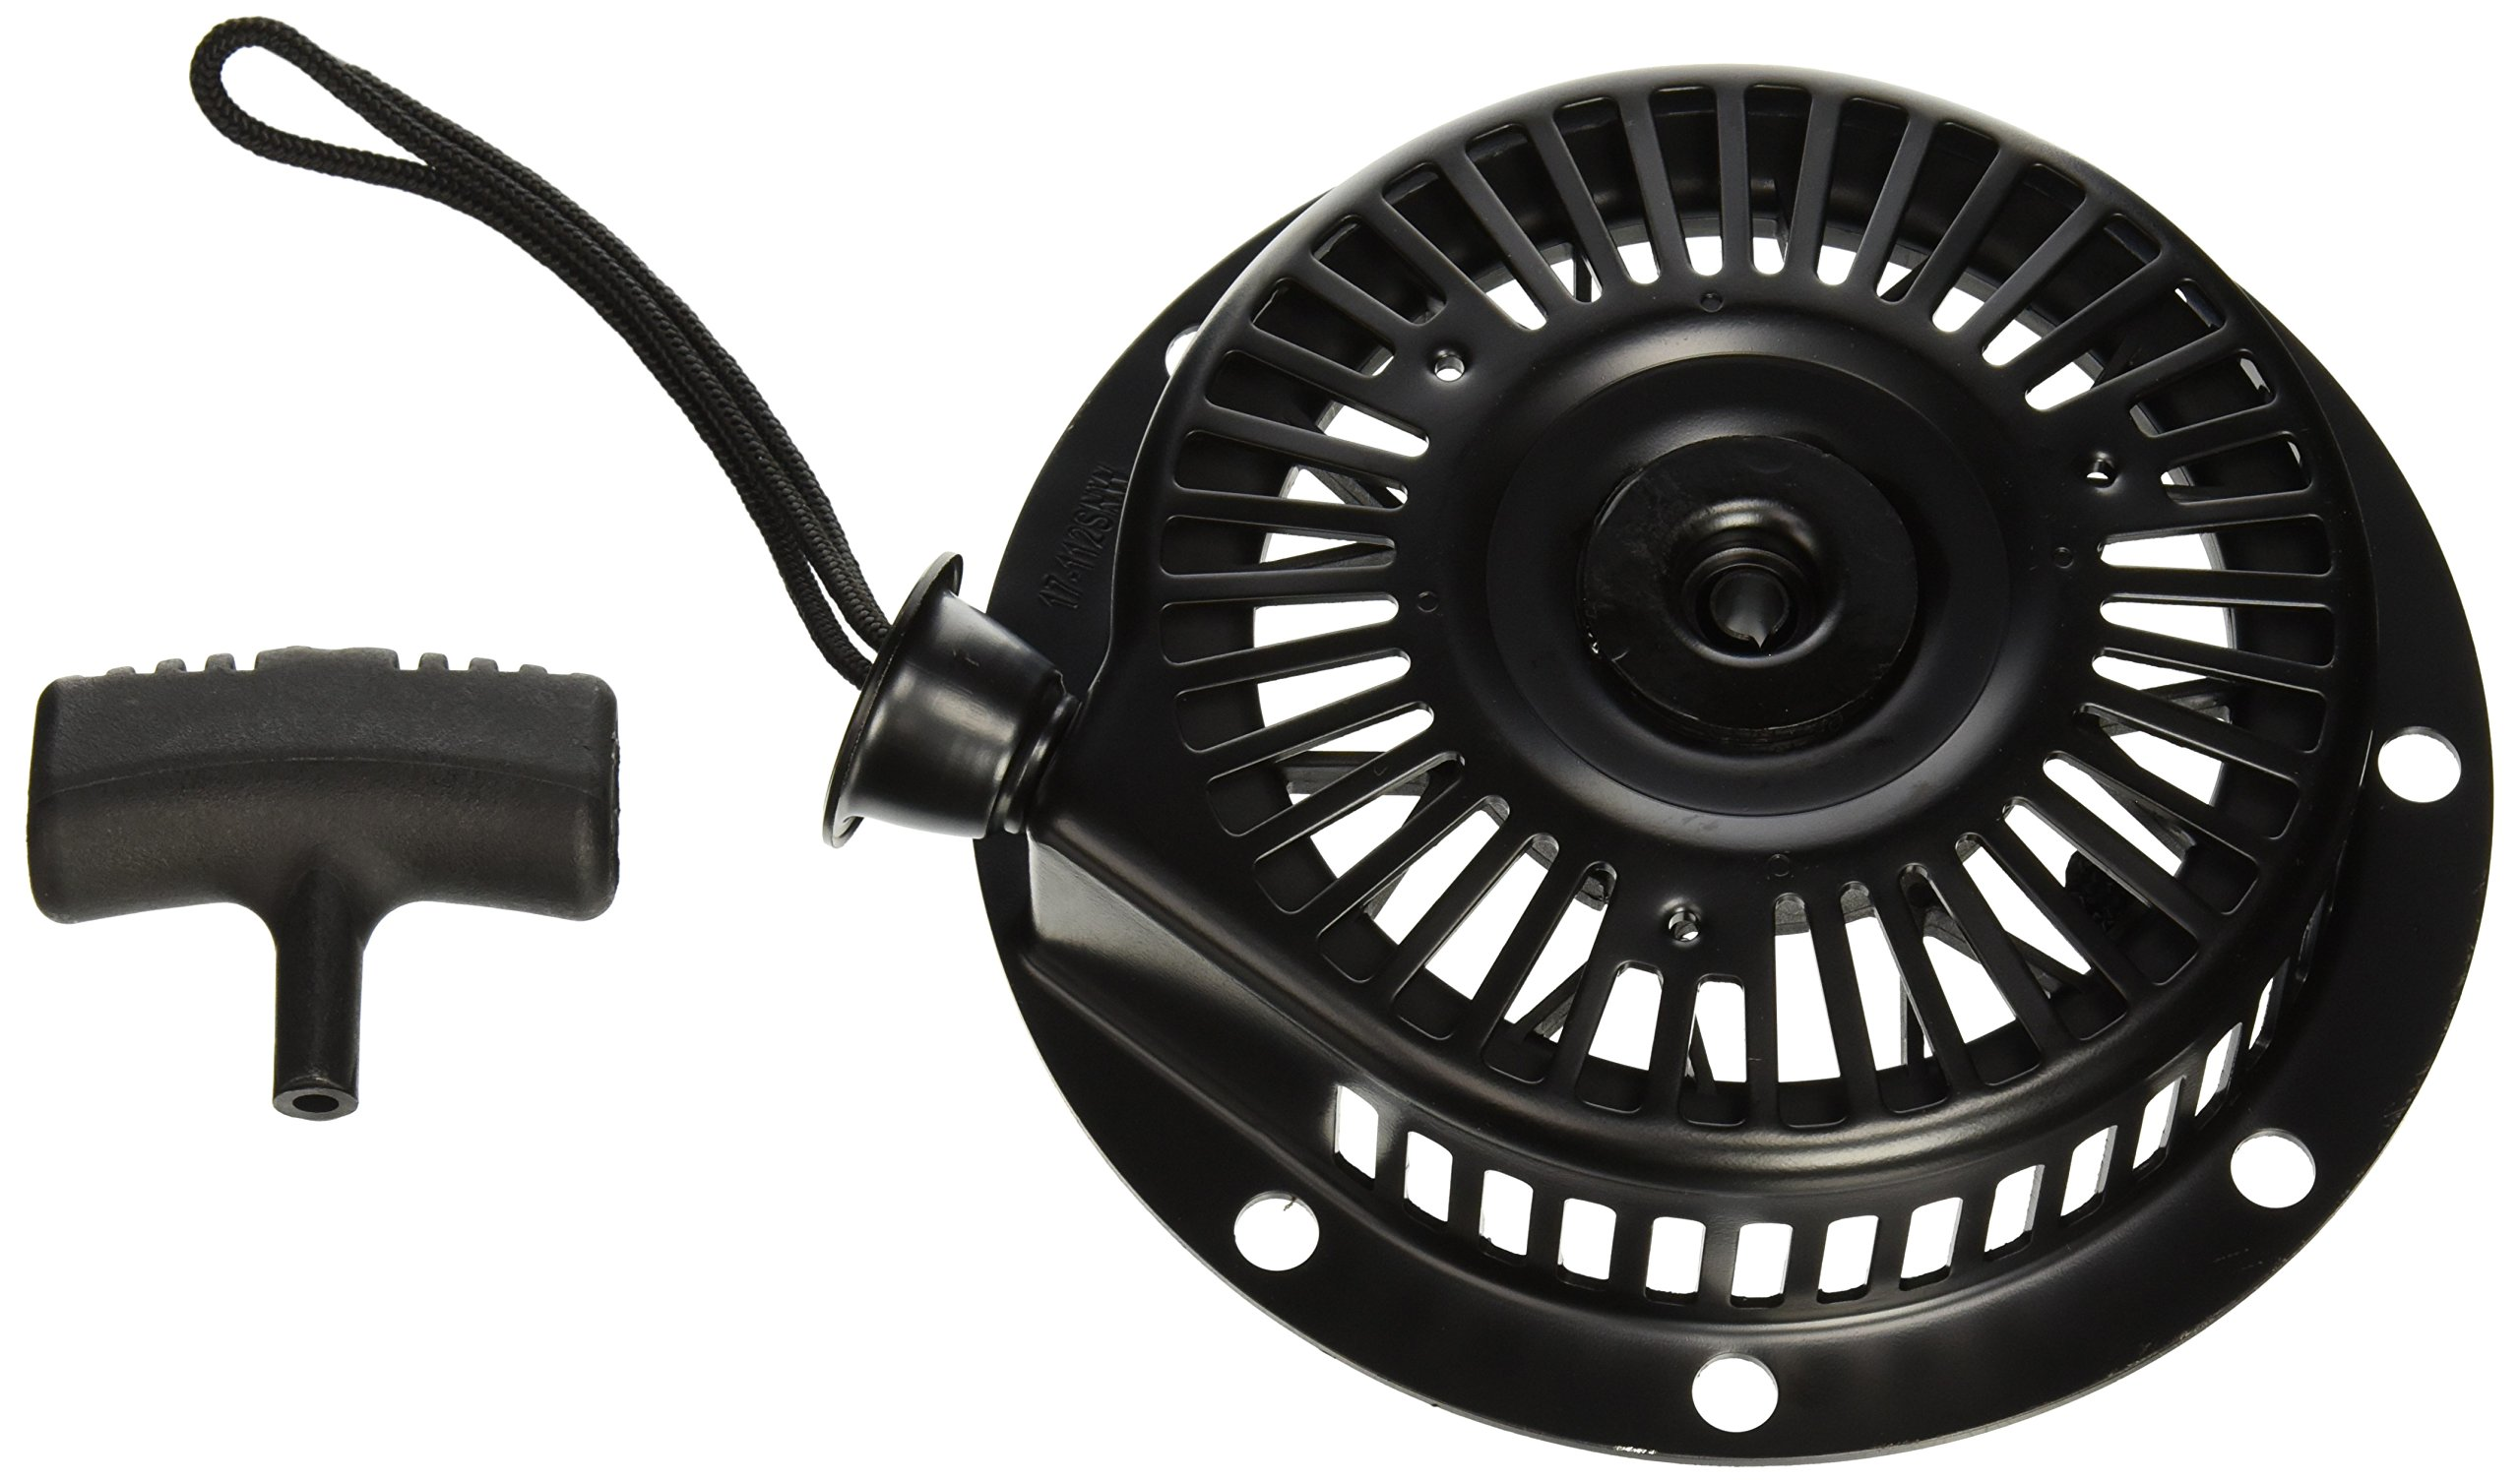 Rotary 12657 Starter Recoil Assembly Replaces Tecumseh Replaces 590749, 590749A, 590789